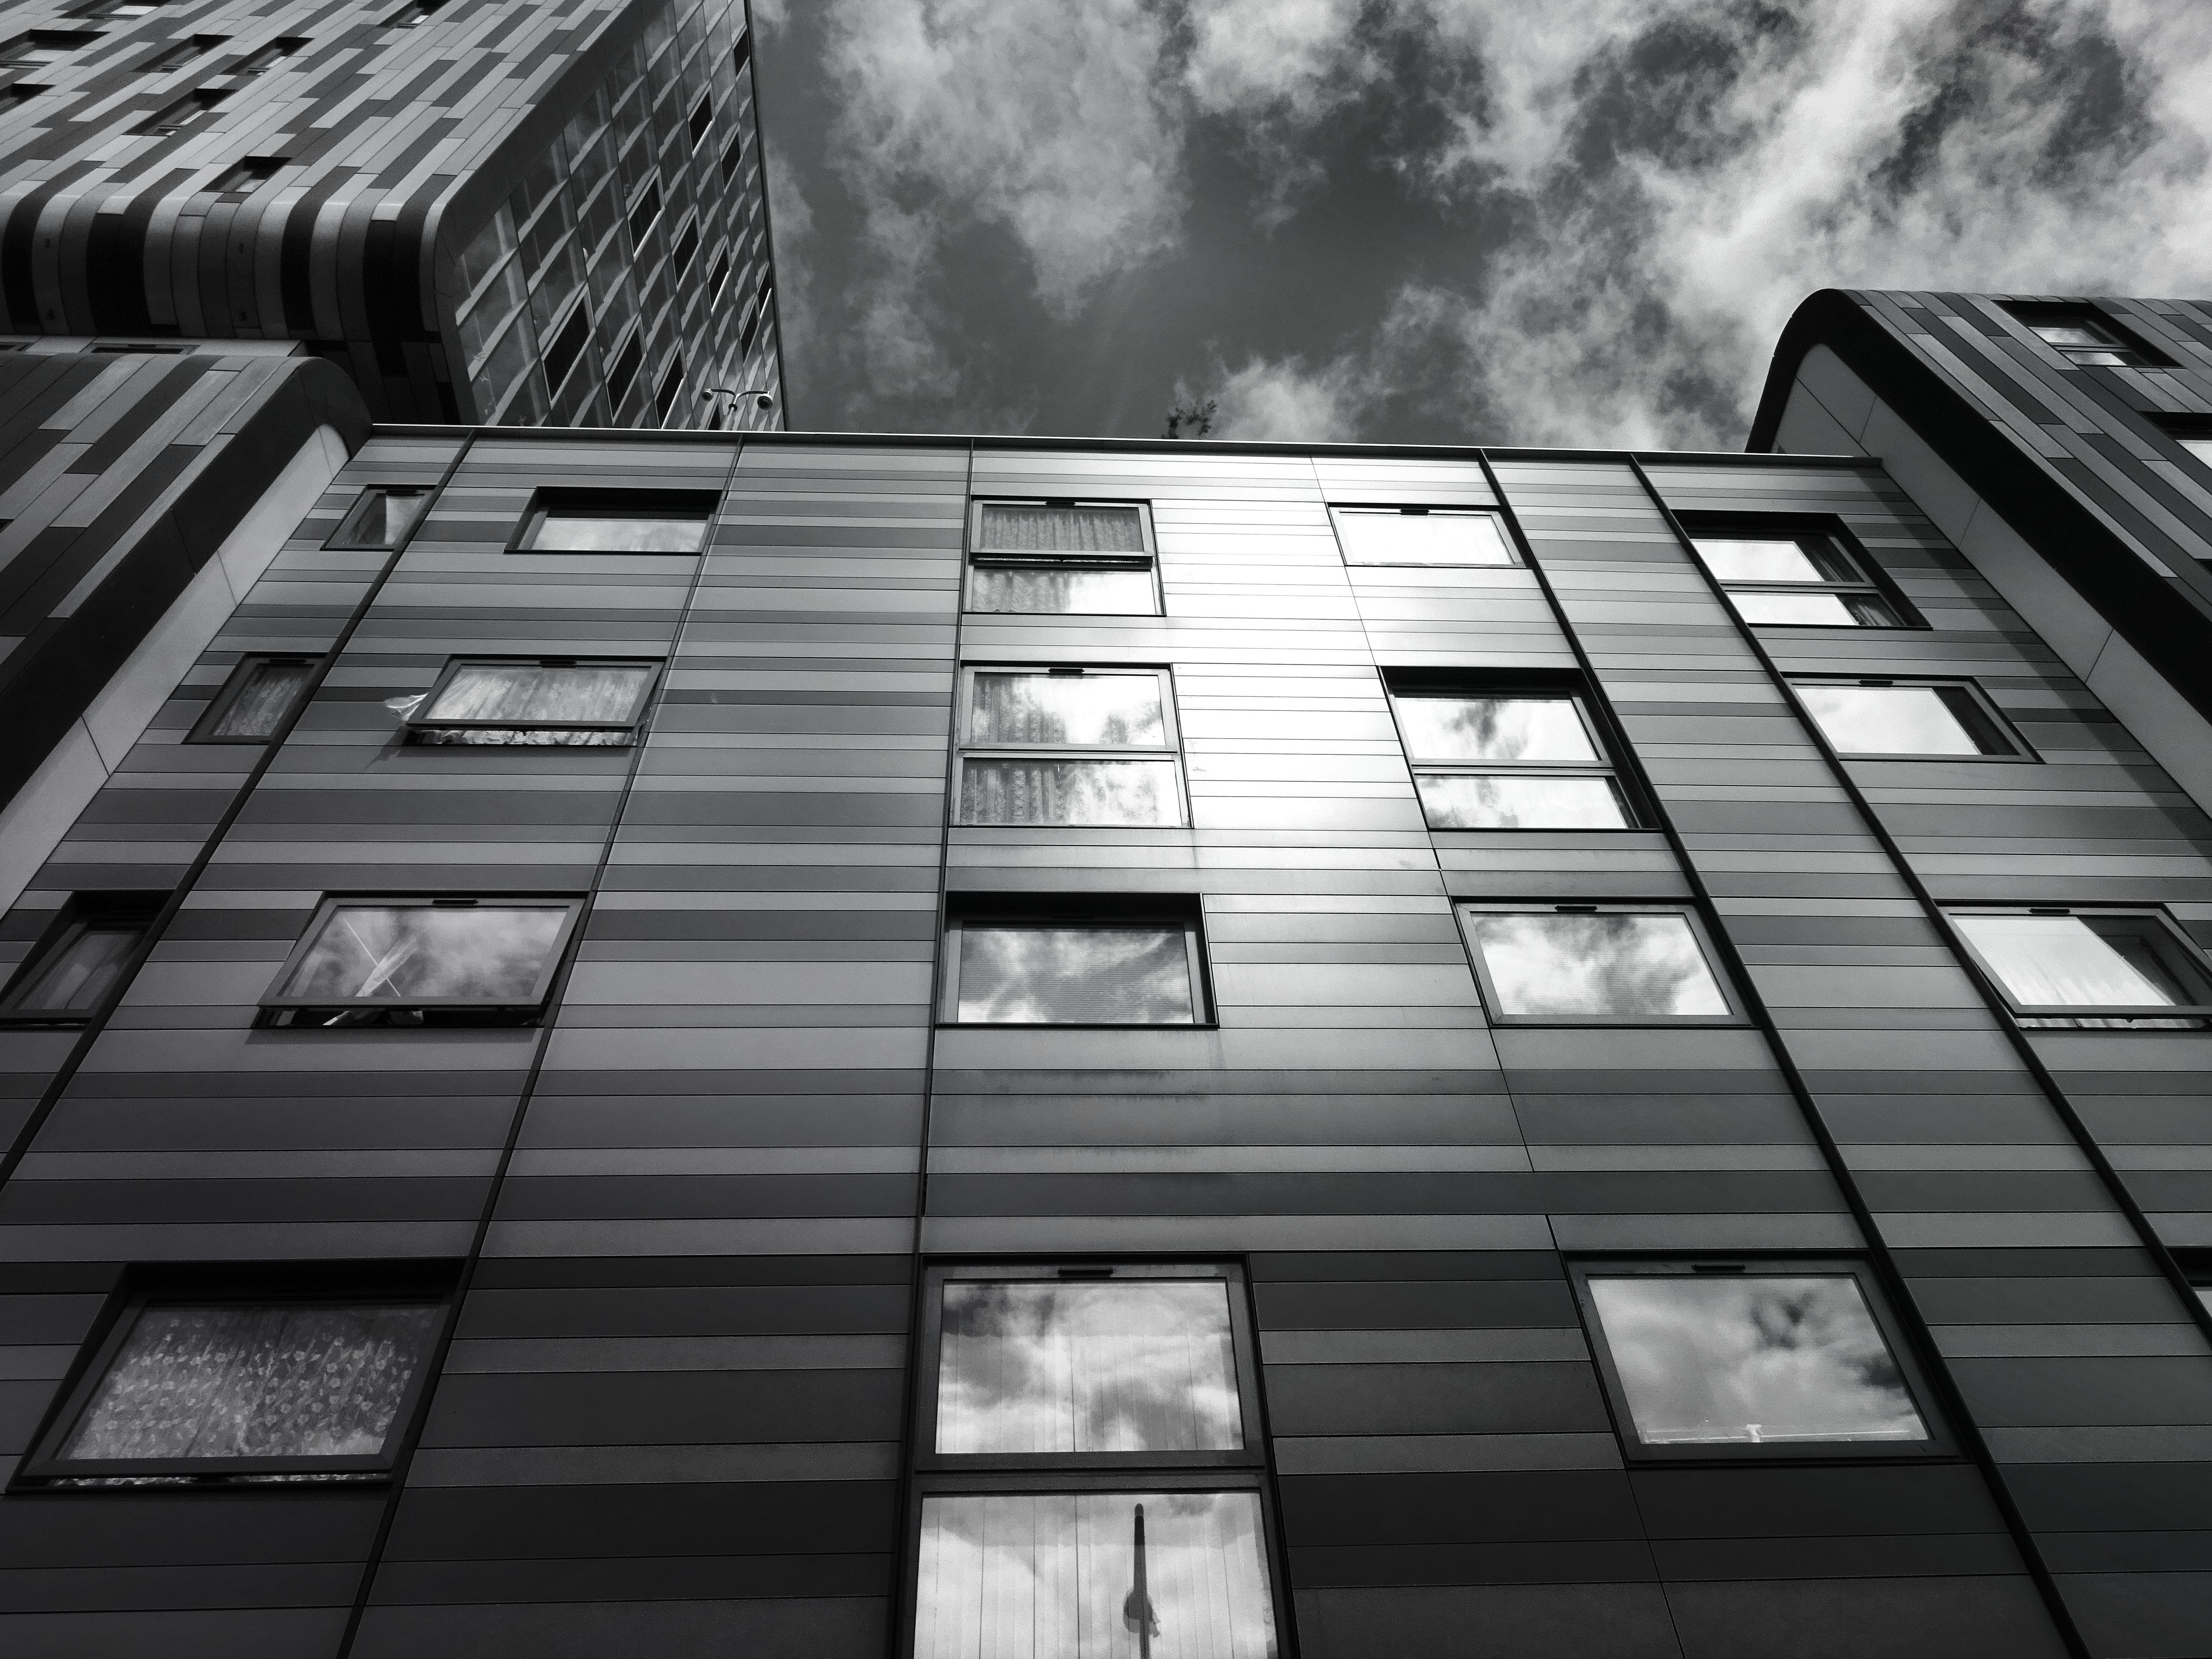 architectural design, black-and-white, buildings